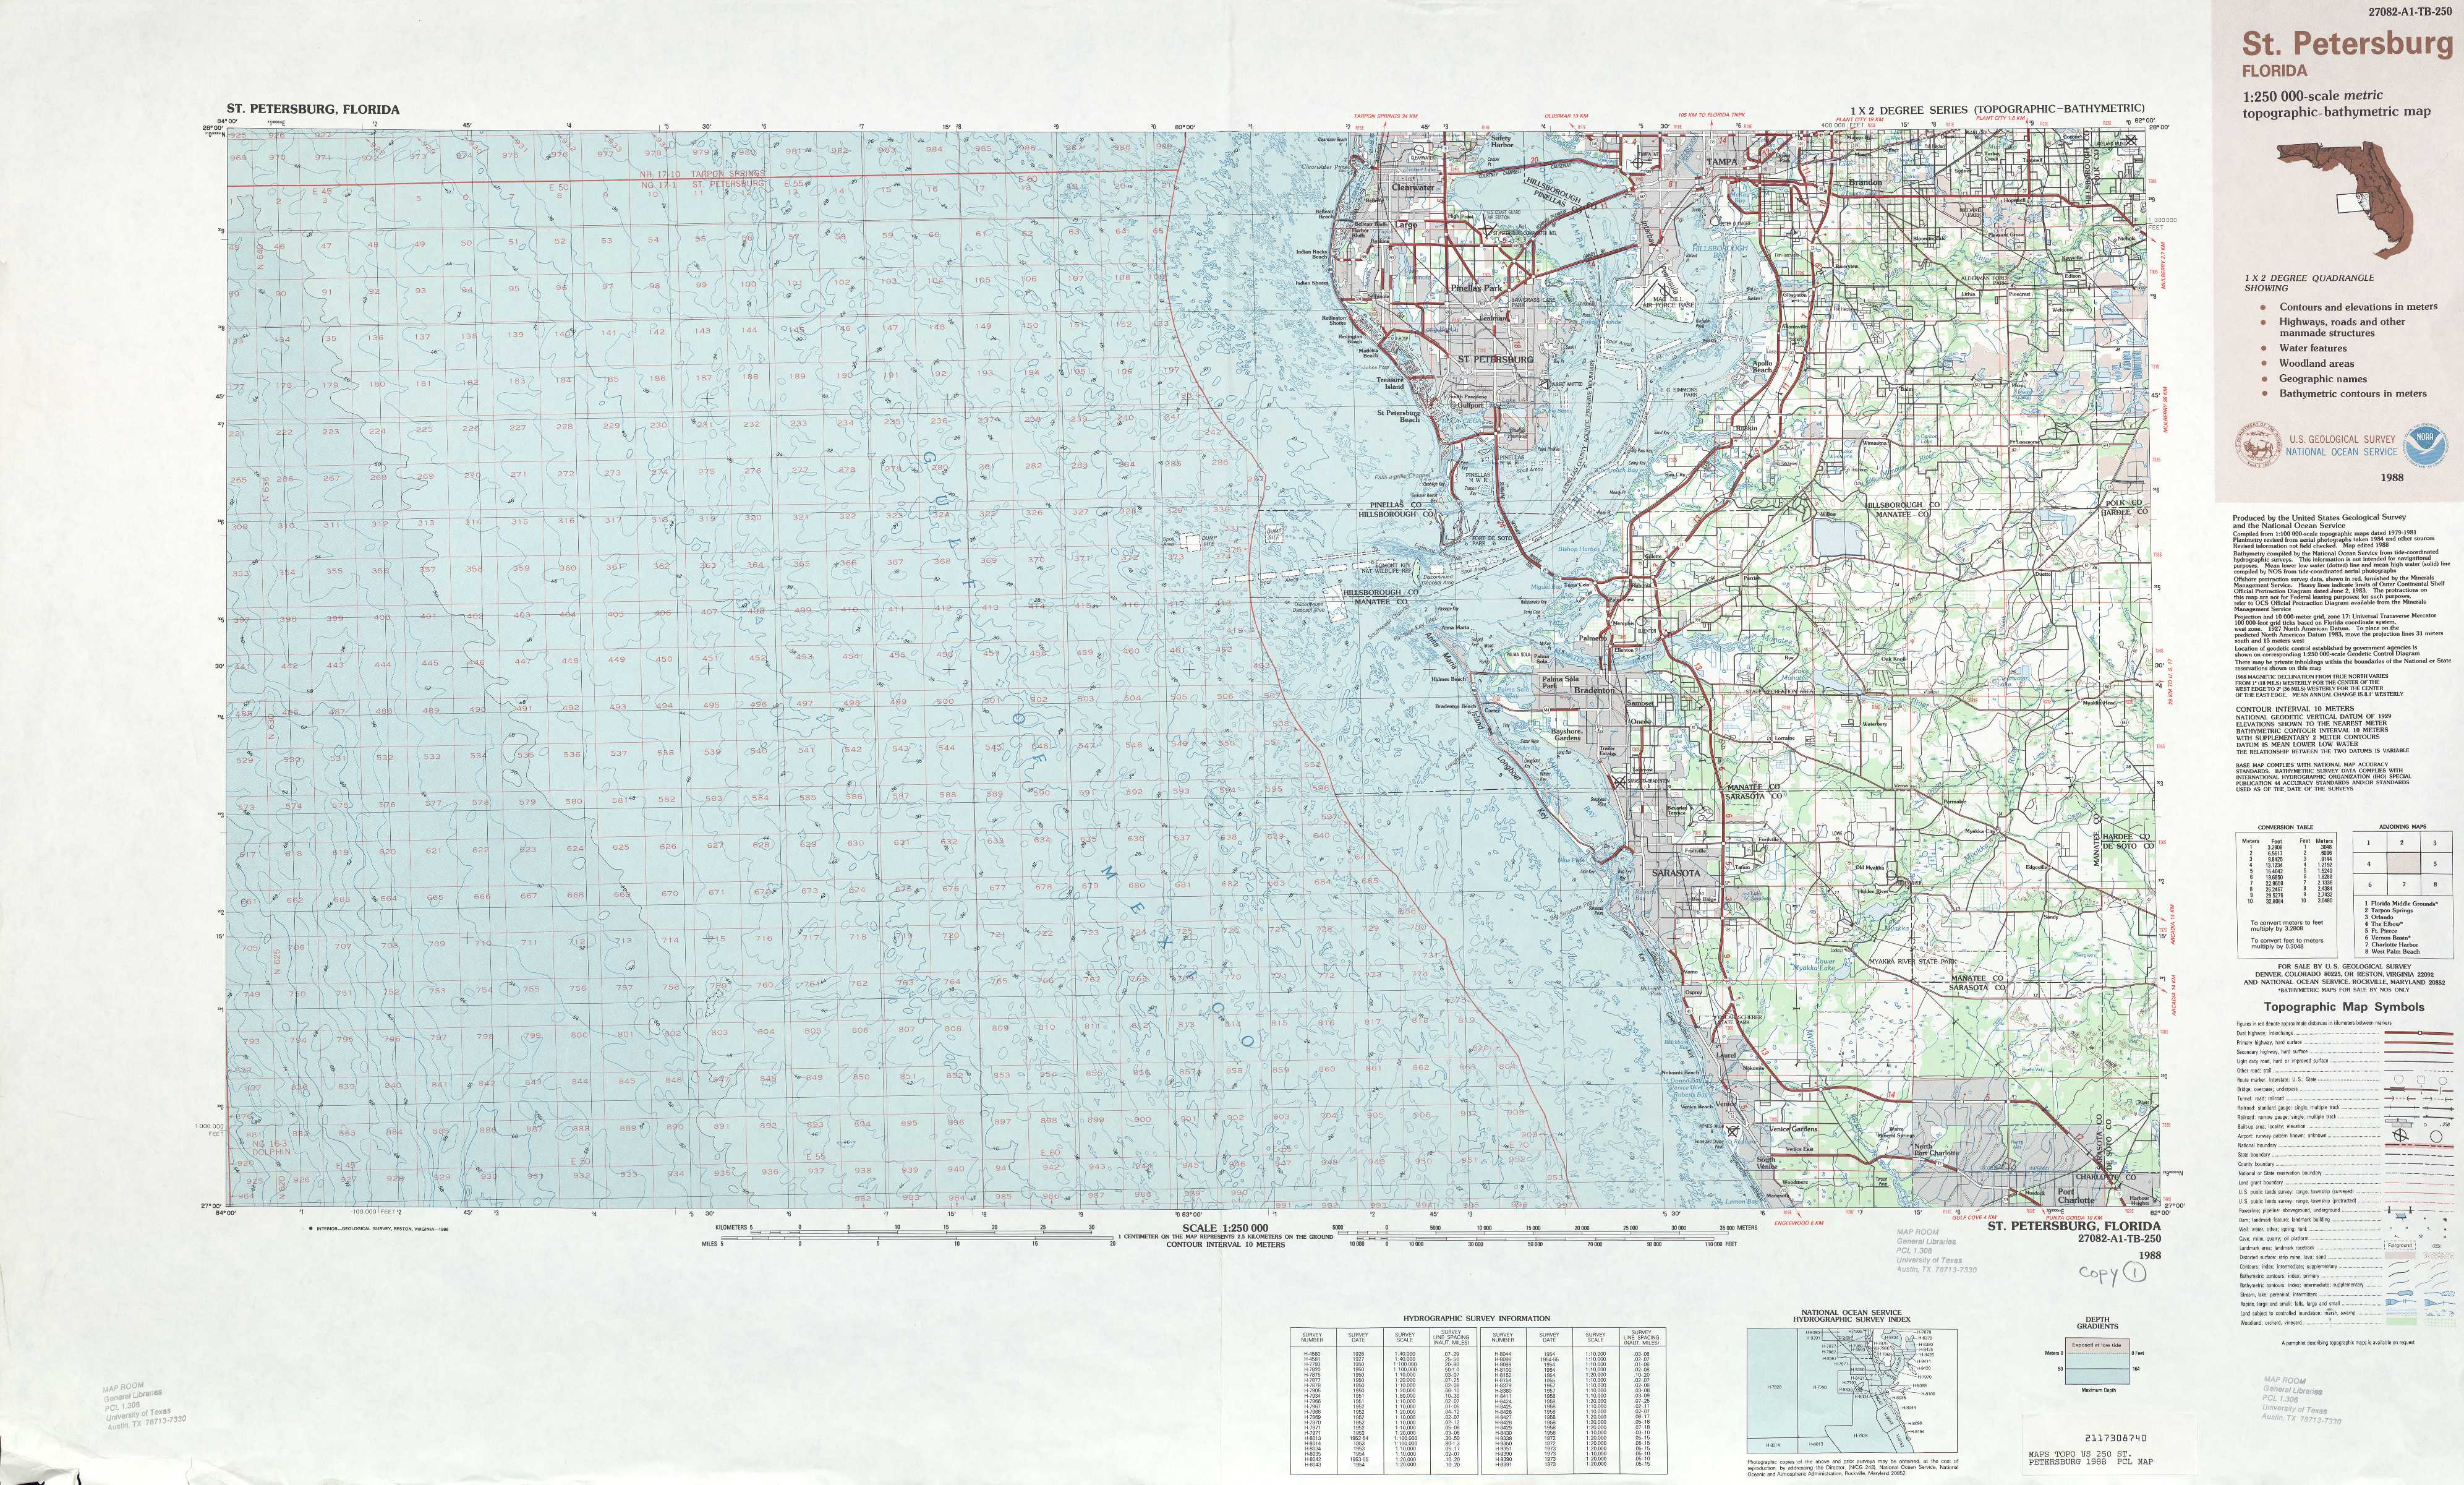 Topo Map Florida.St Petersburg Topographic Maps Fl Usgs Topo Quad 27082a1 At 1